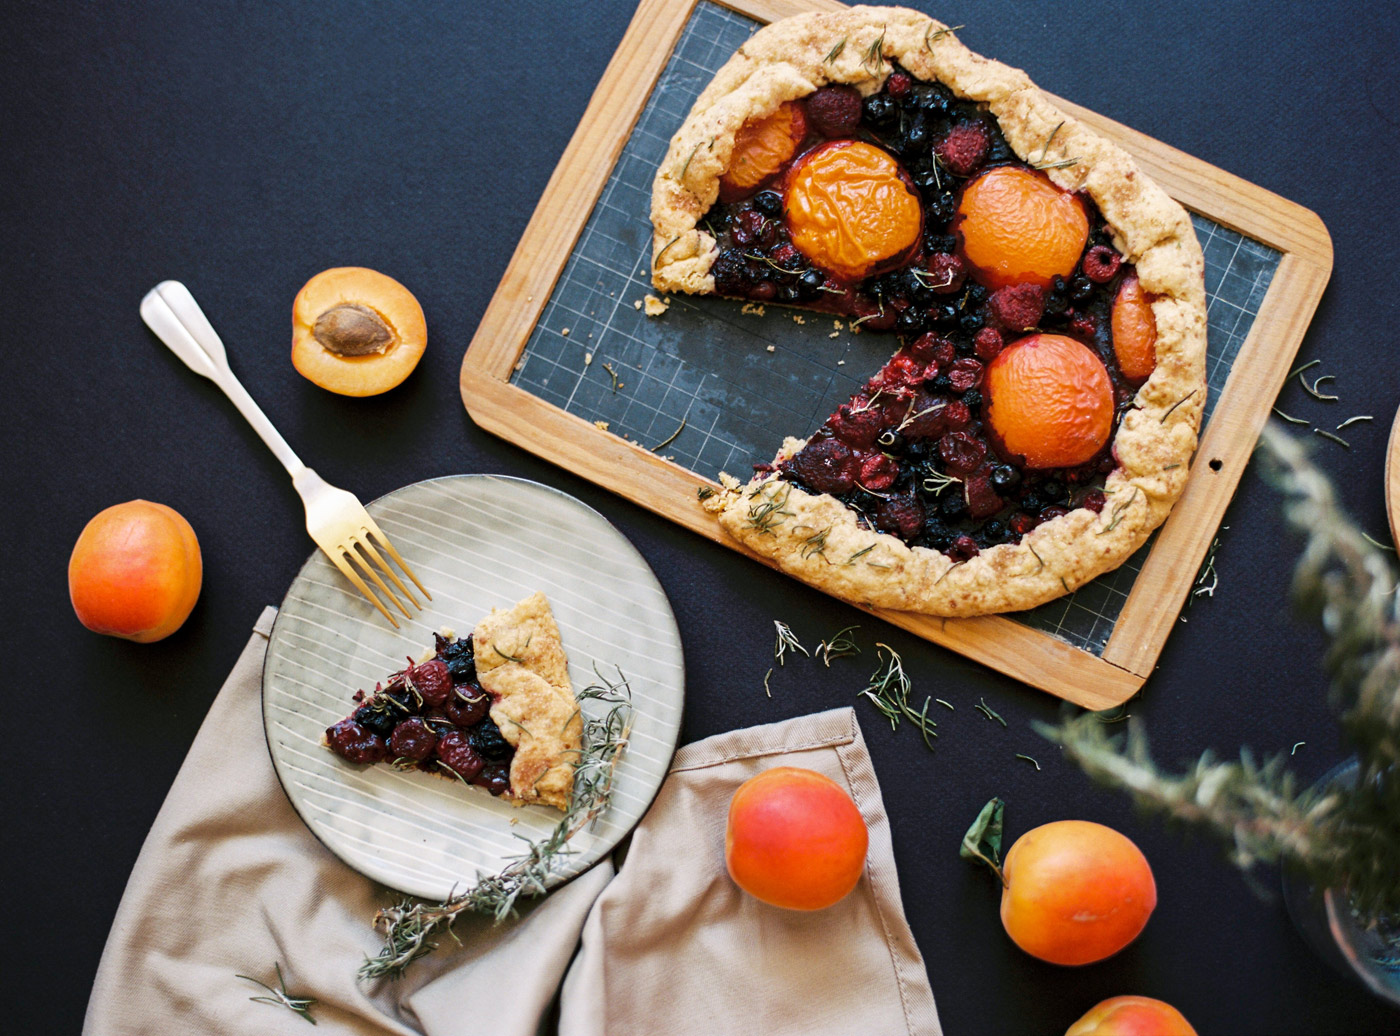 Blanccoco_Rustic_pie_styliste_photographe_culinaire-5